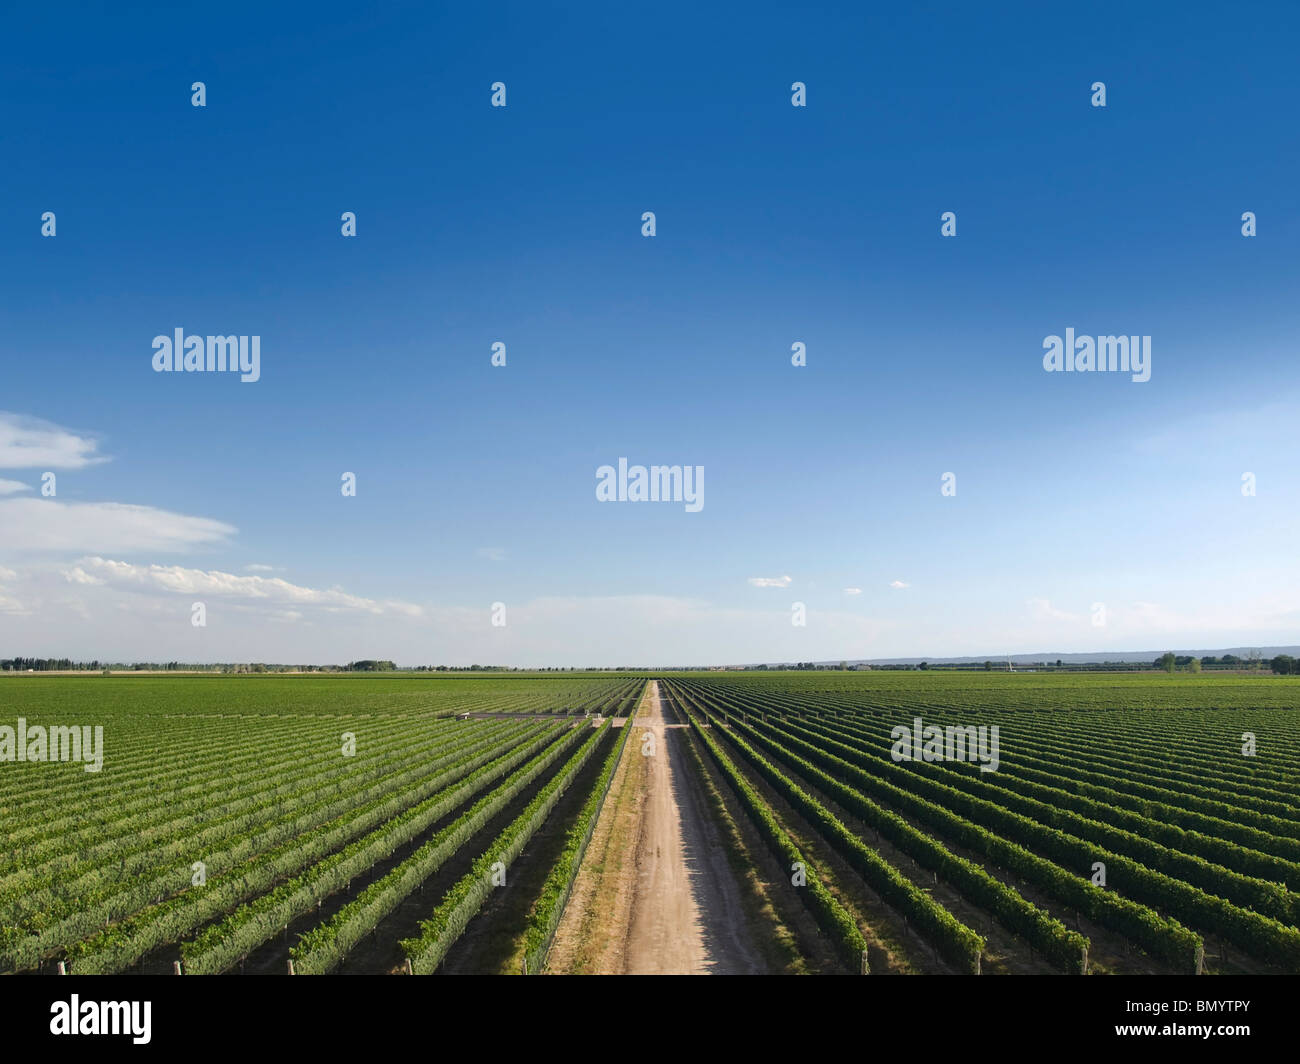 Large vineyard is cut by a road in the middle. - Stock Image